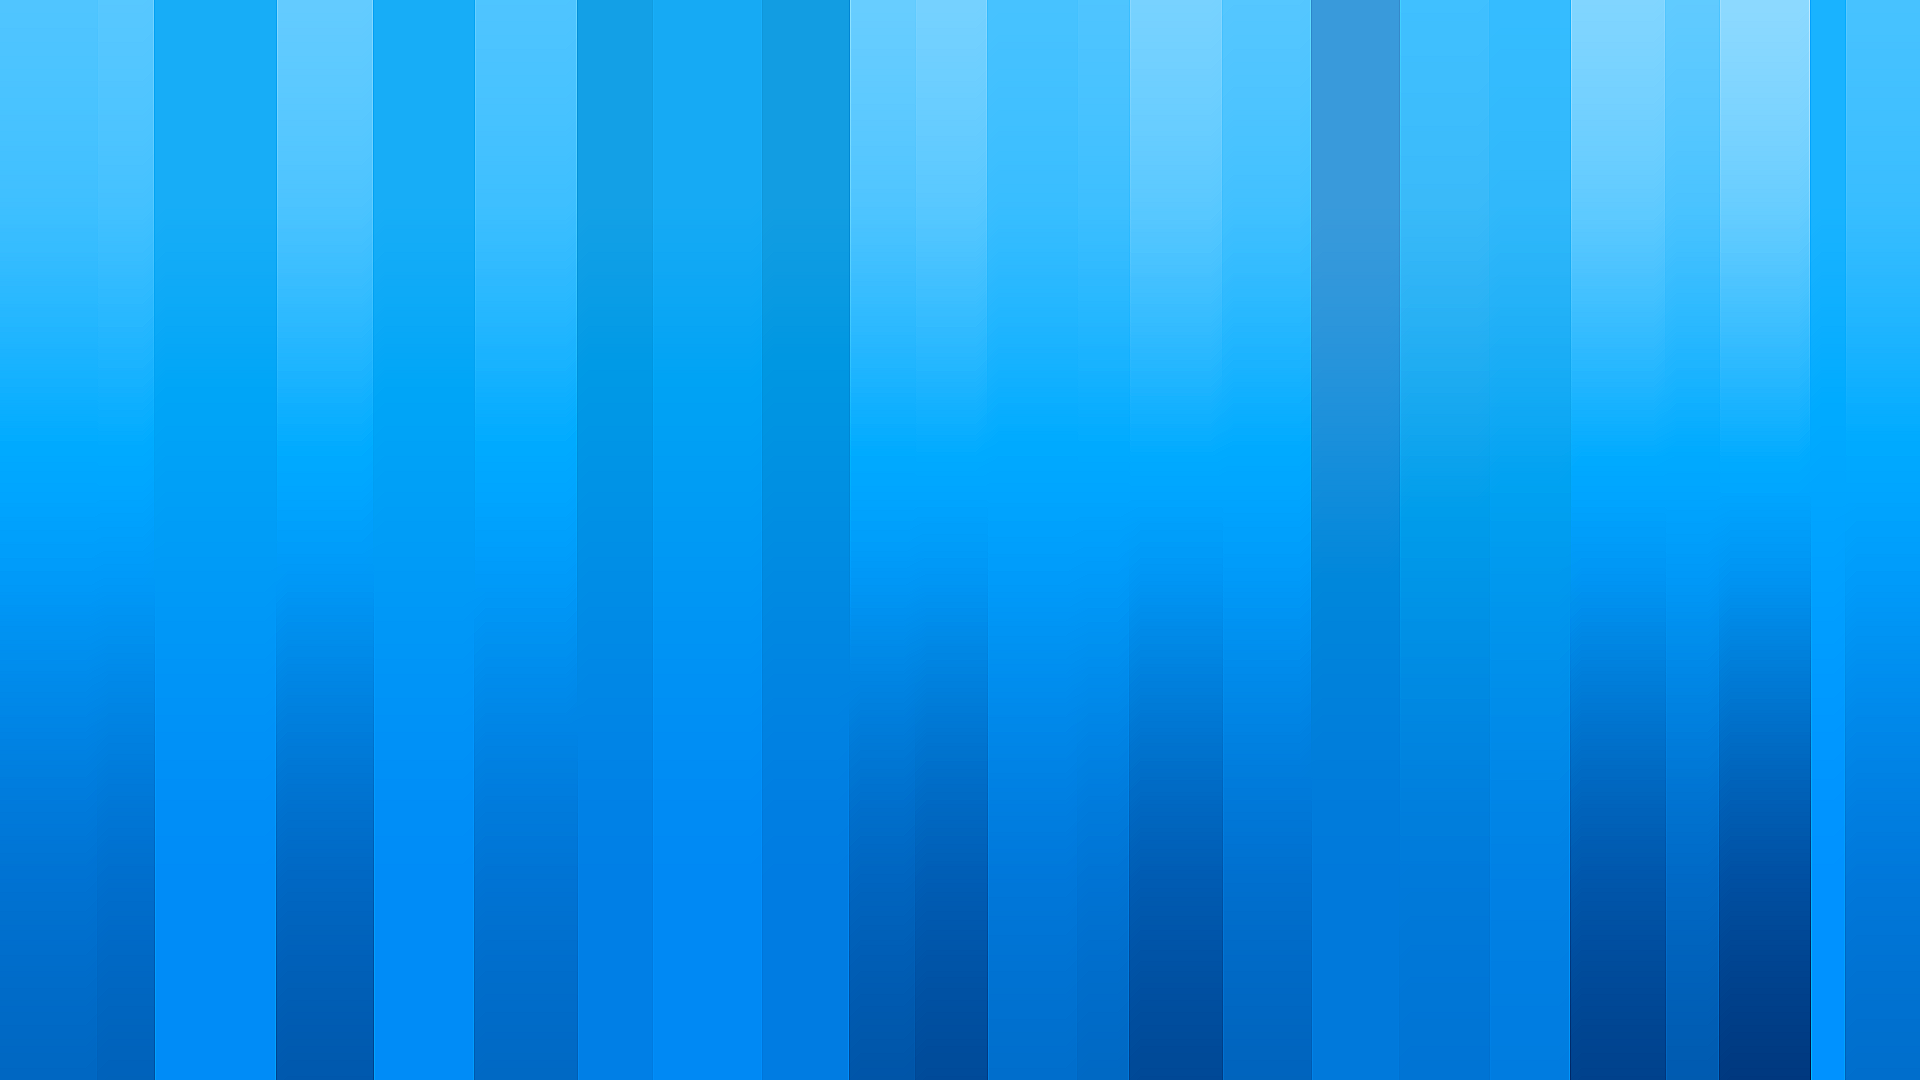 Light Blue Backgrounds, HQ, Chanell Leonhardt